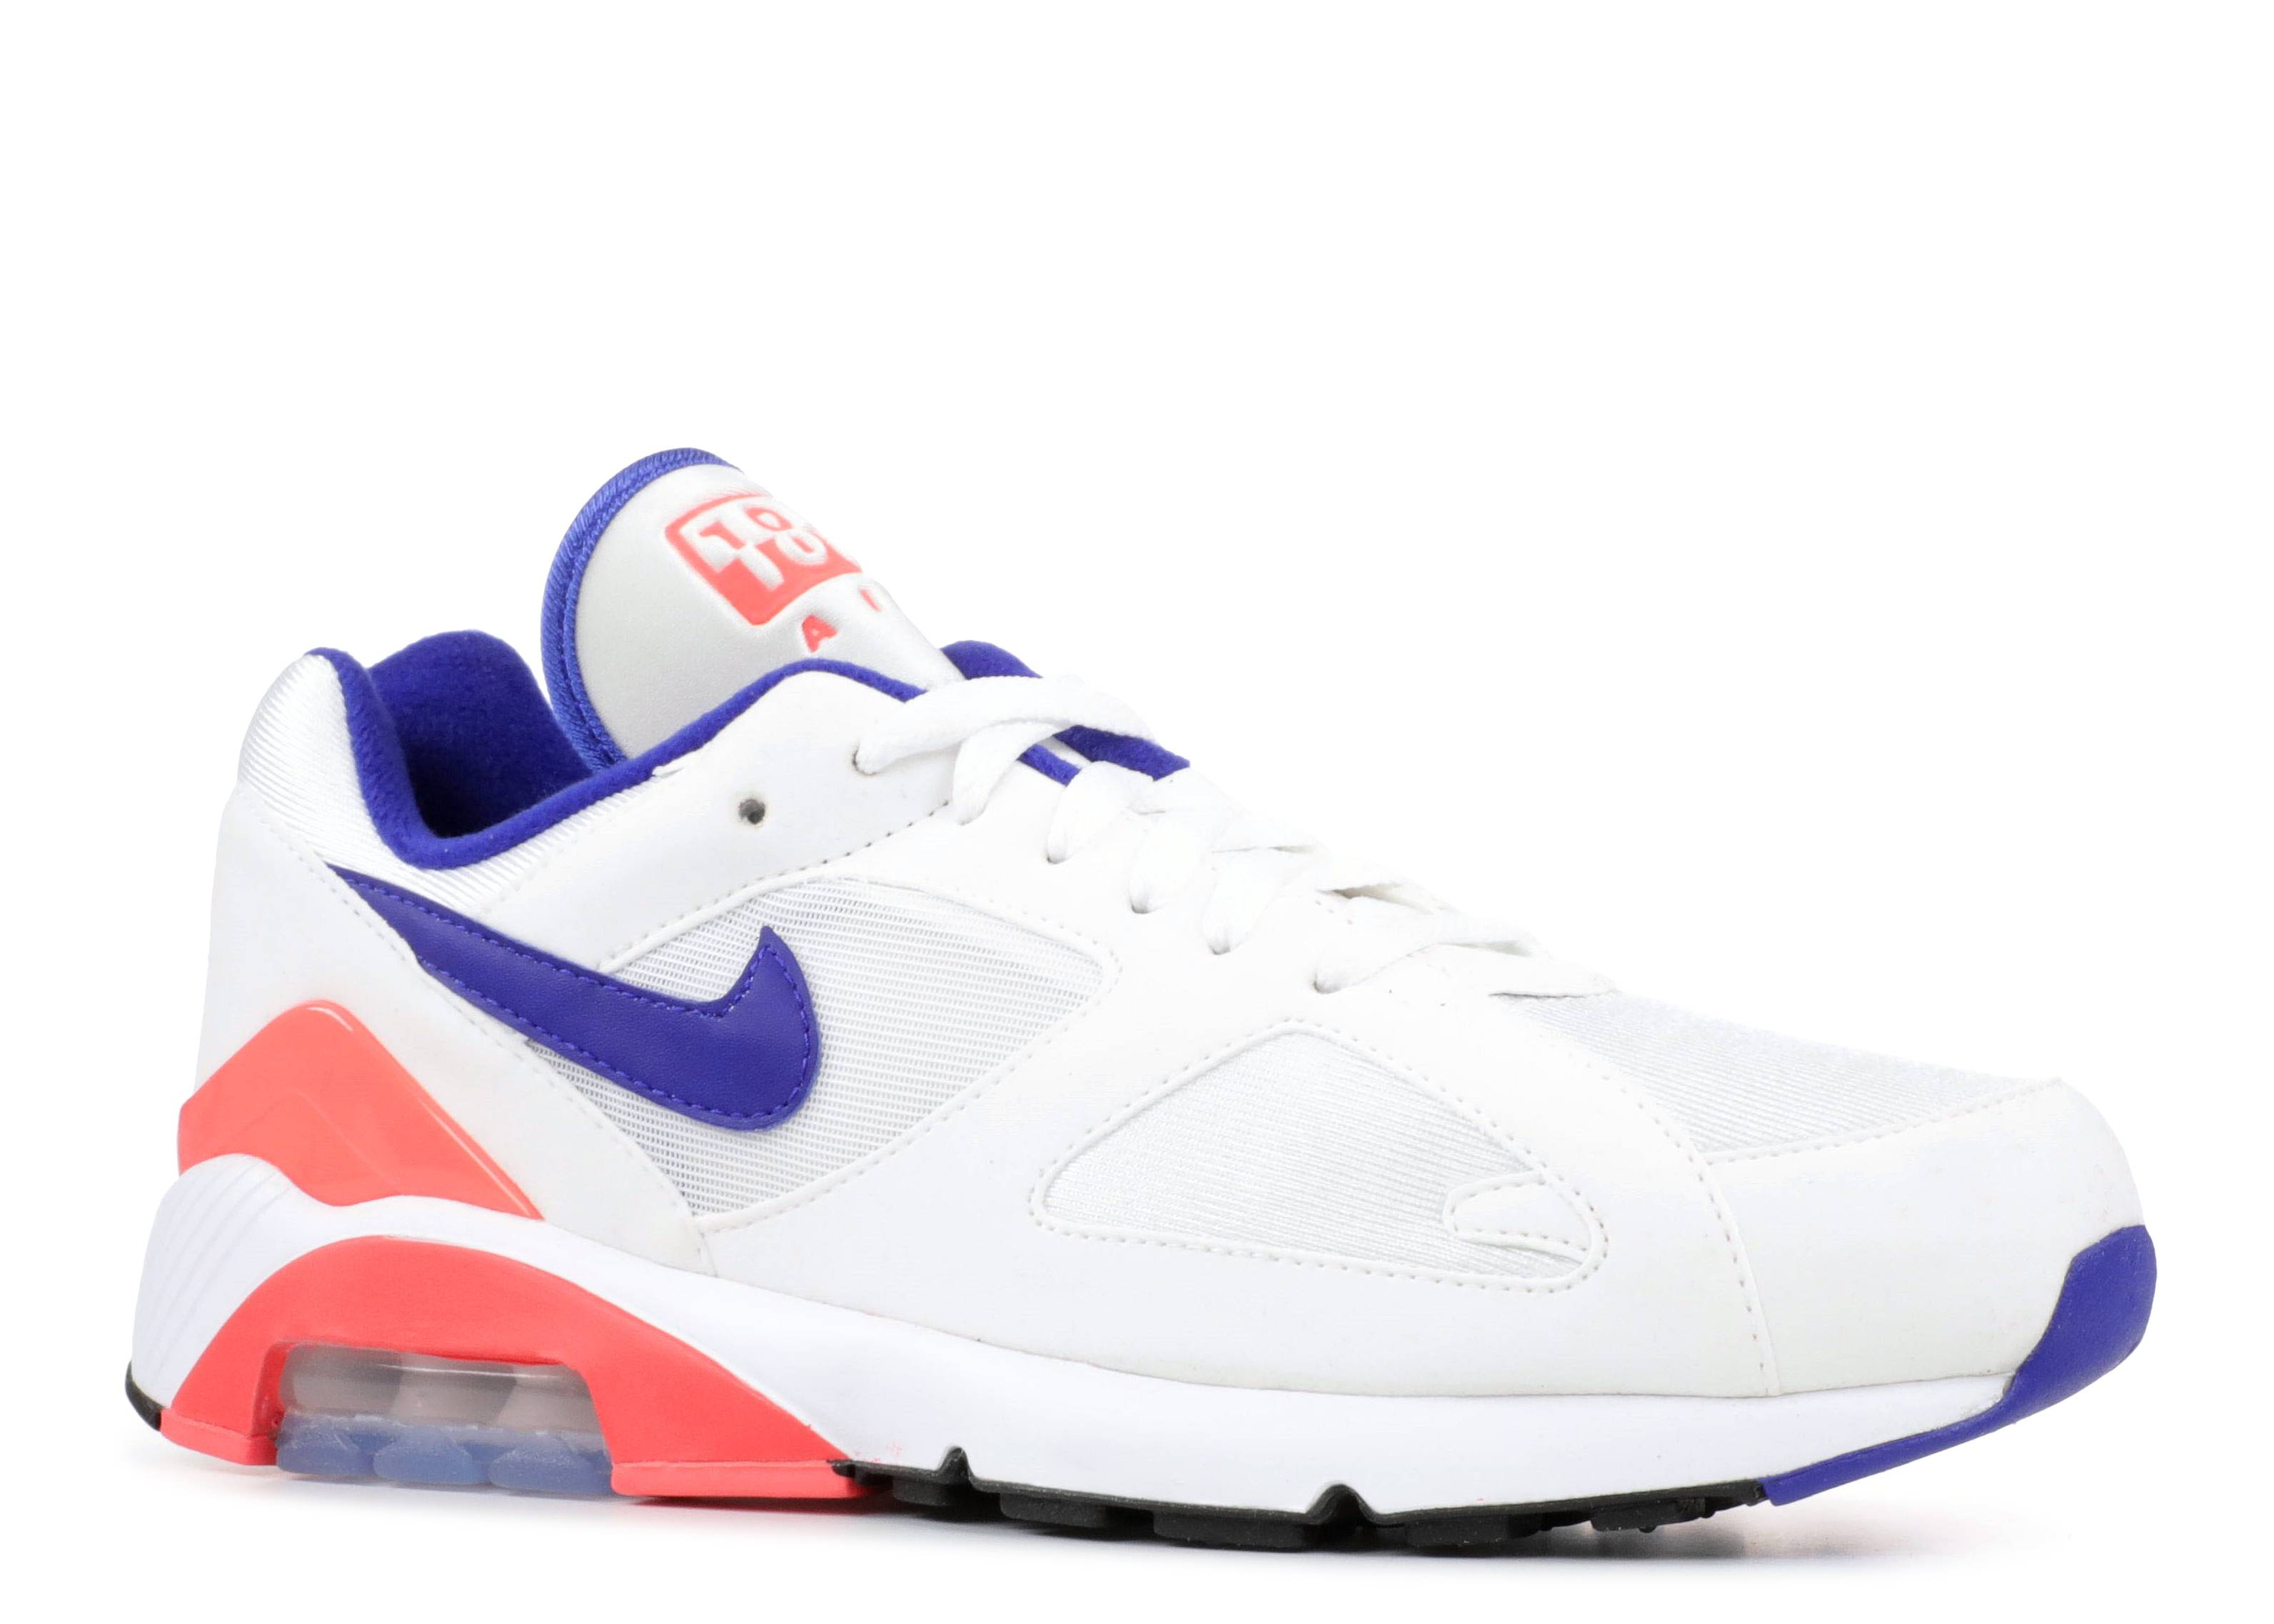 promo code 286cc e2cd3 Nike Air Max 180 Ultramarine (2018) - 1